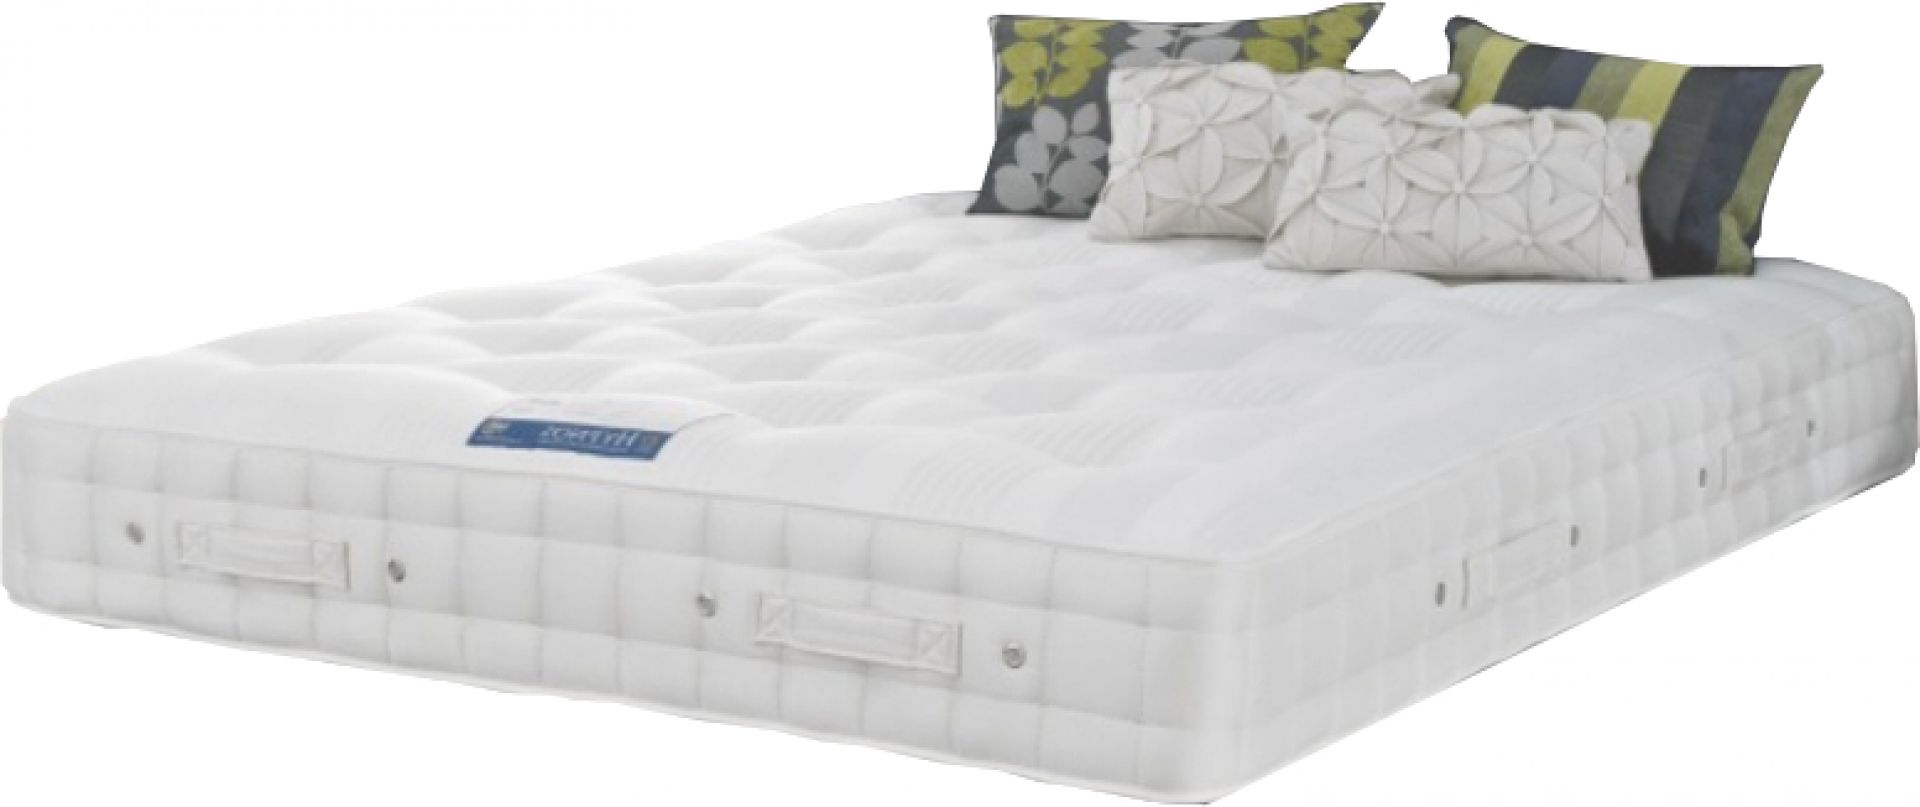 Orthocare 10 Mattress